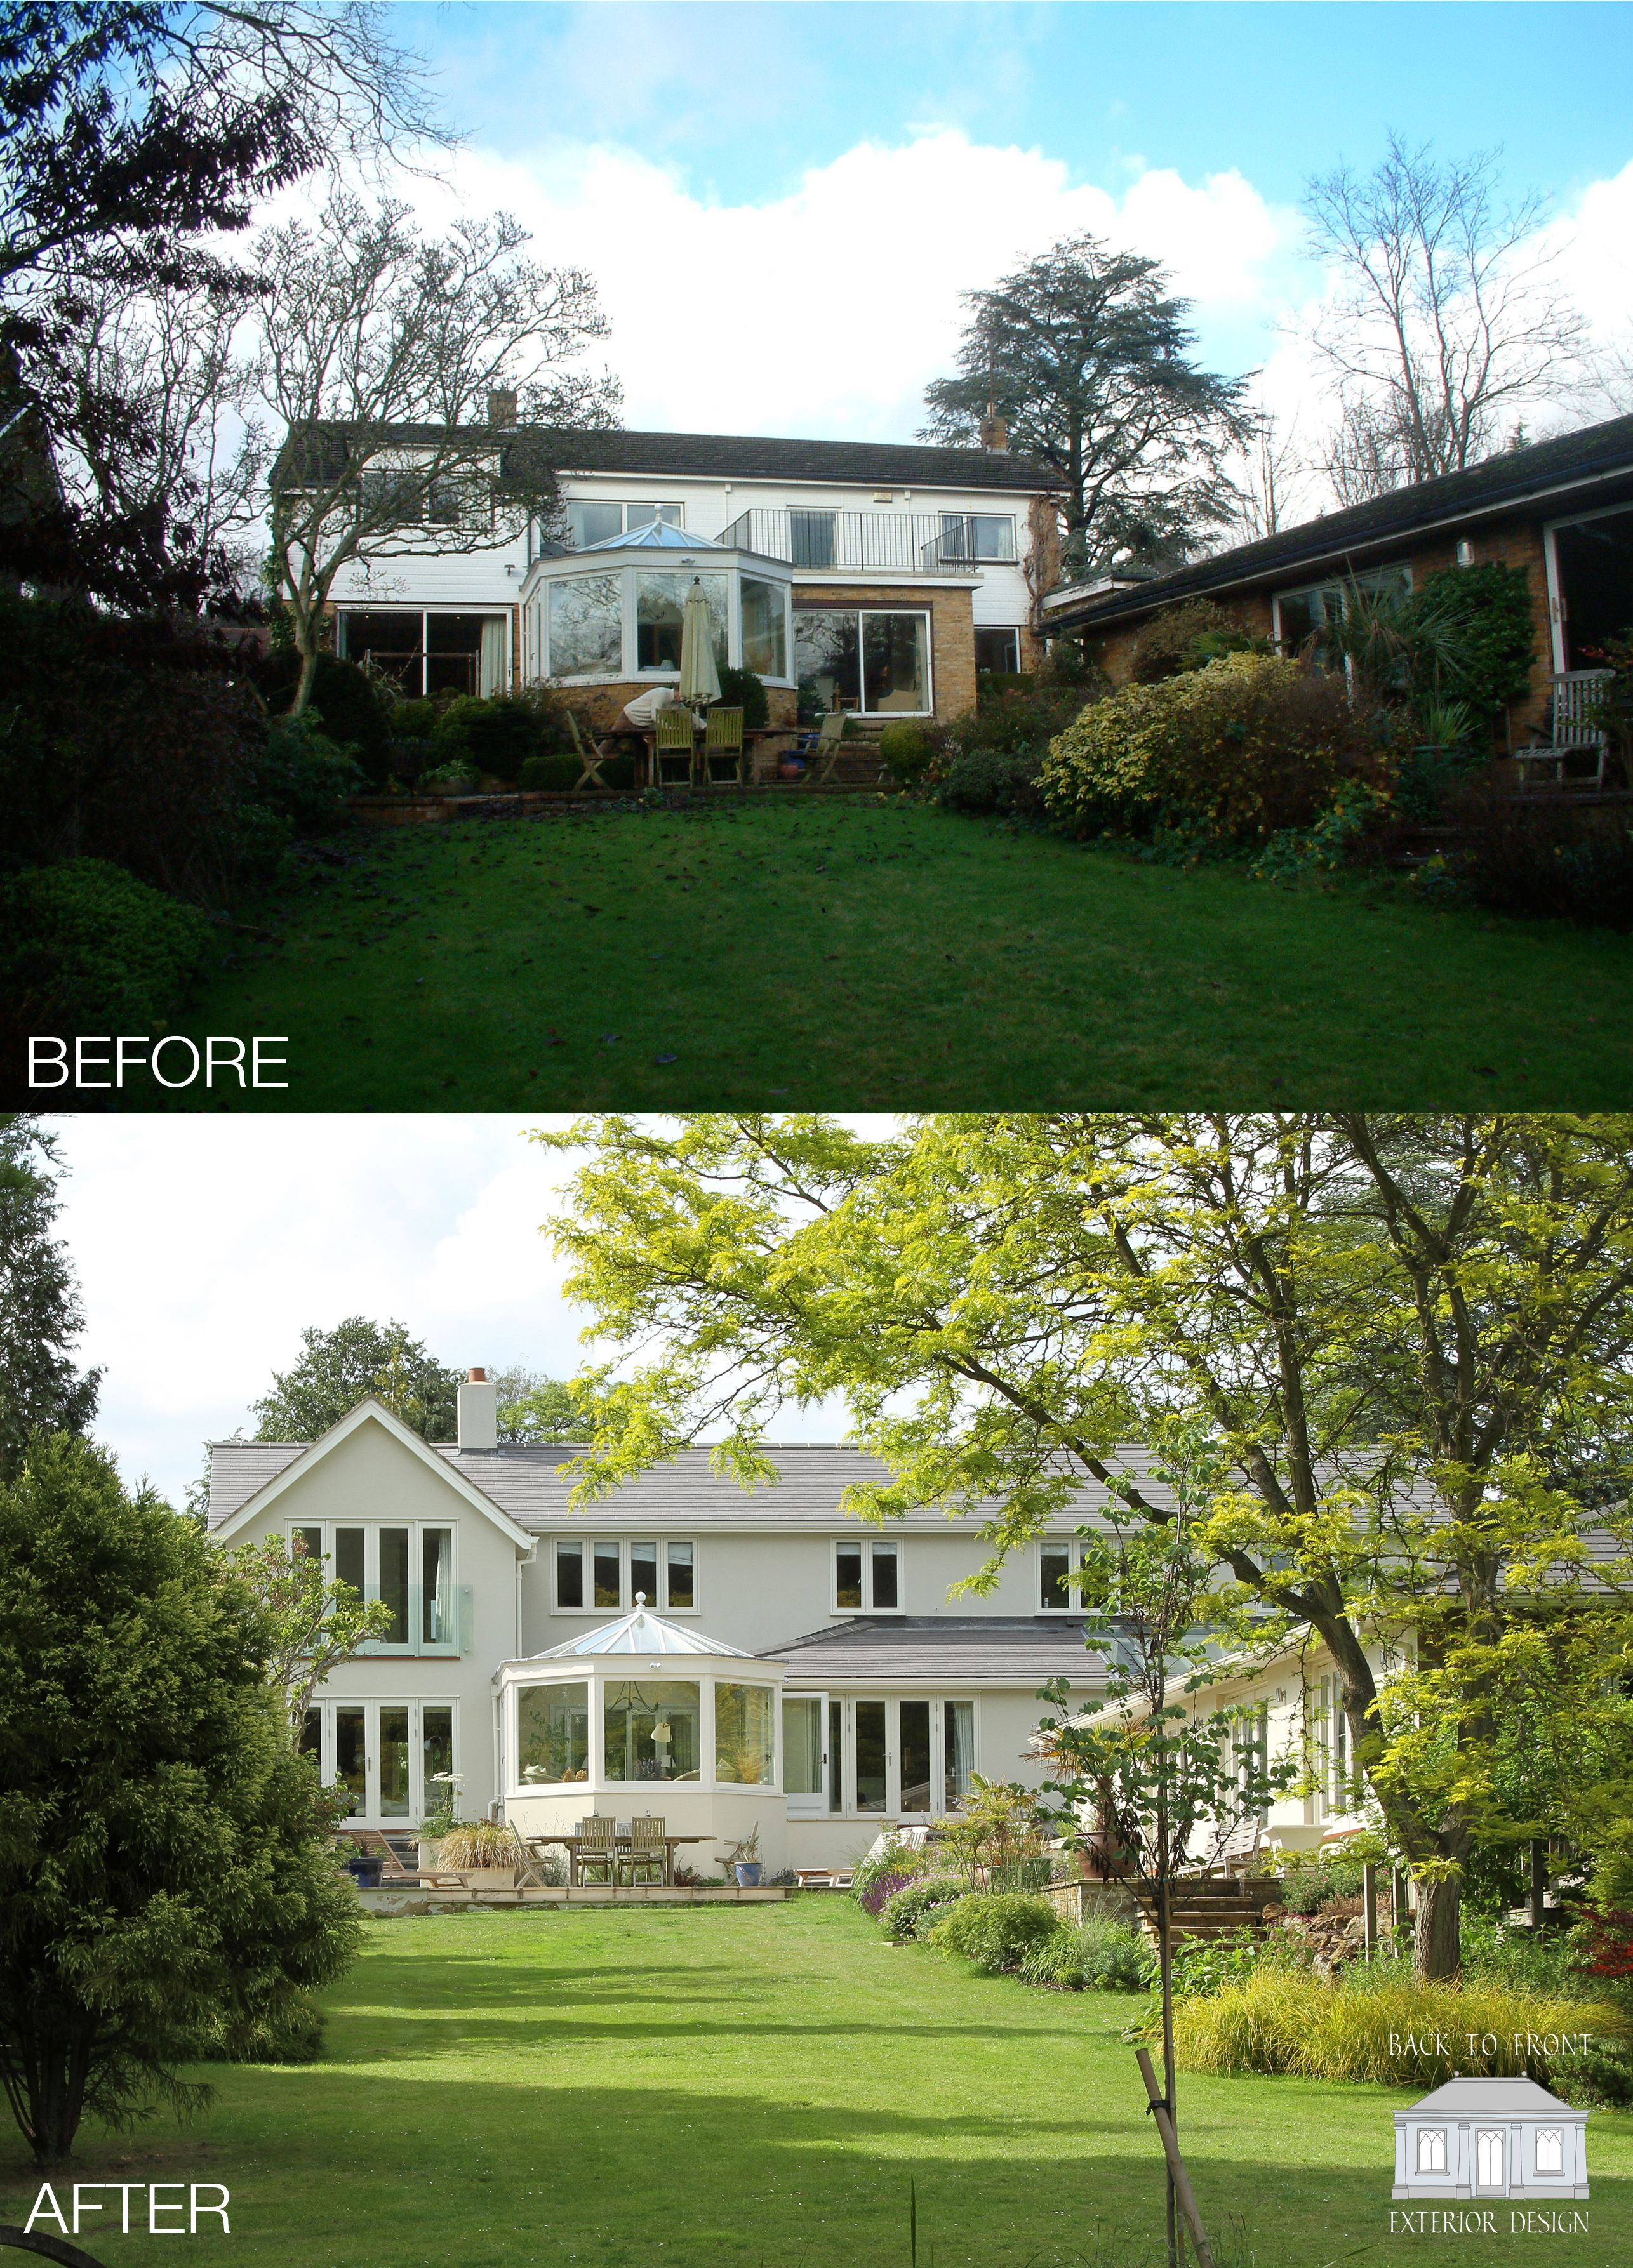 1960 S Before And After Remodelling Project In Guildford Surrey By Back To Front Exterior: Exterior Rear Transformation Of This 1960's Home In Surrey. By Back To Front Exterior Design